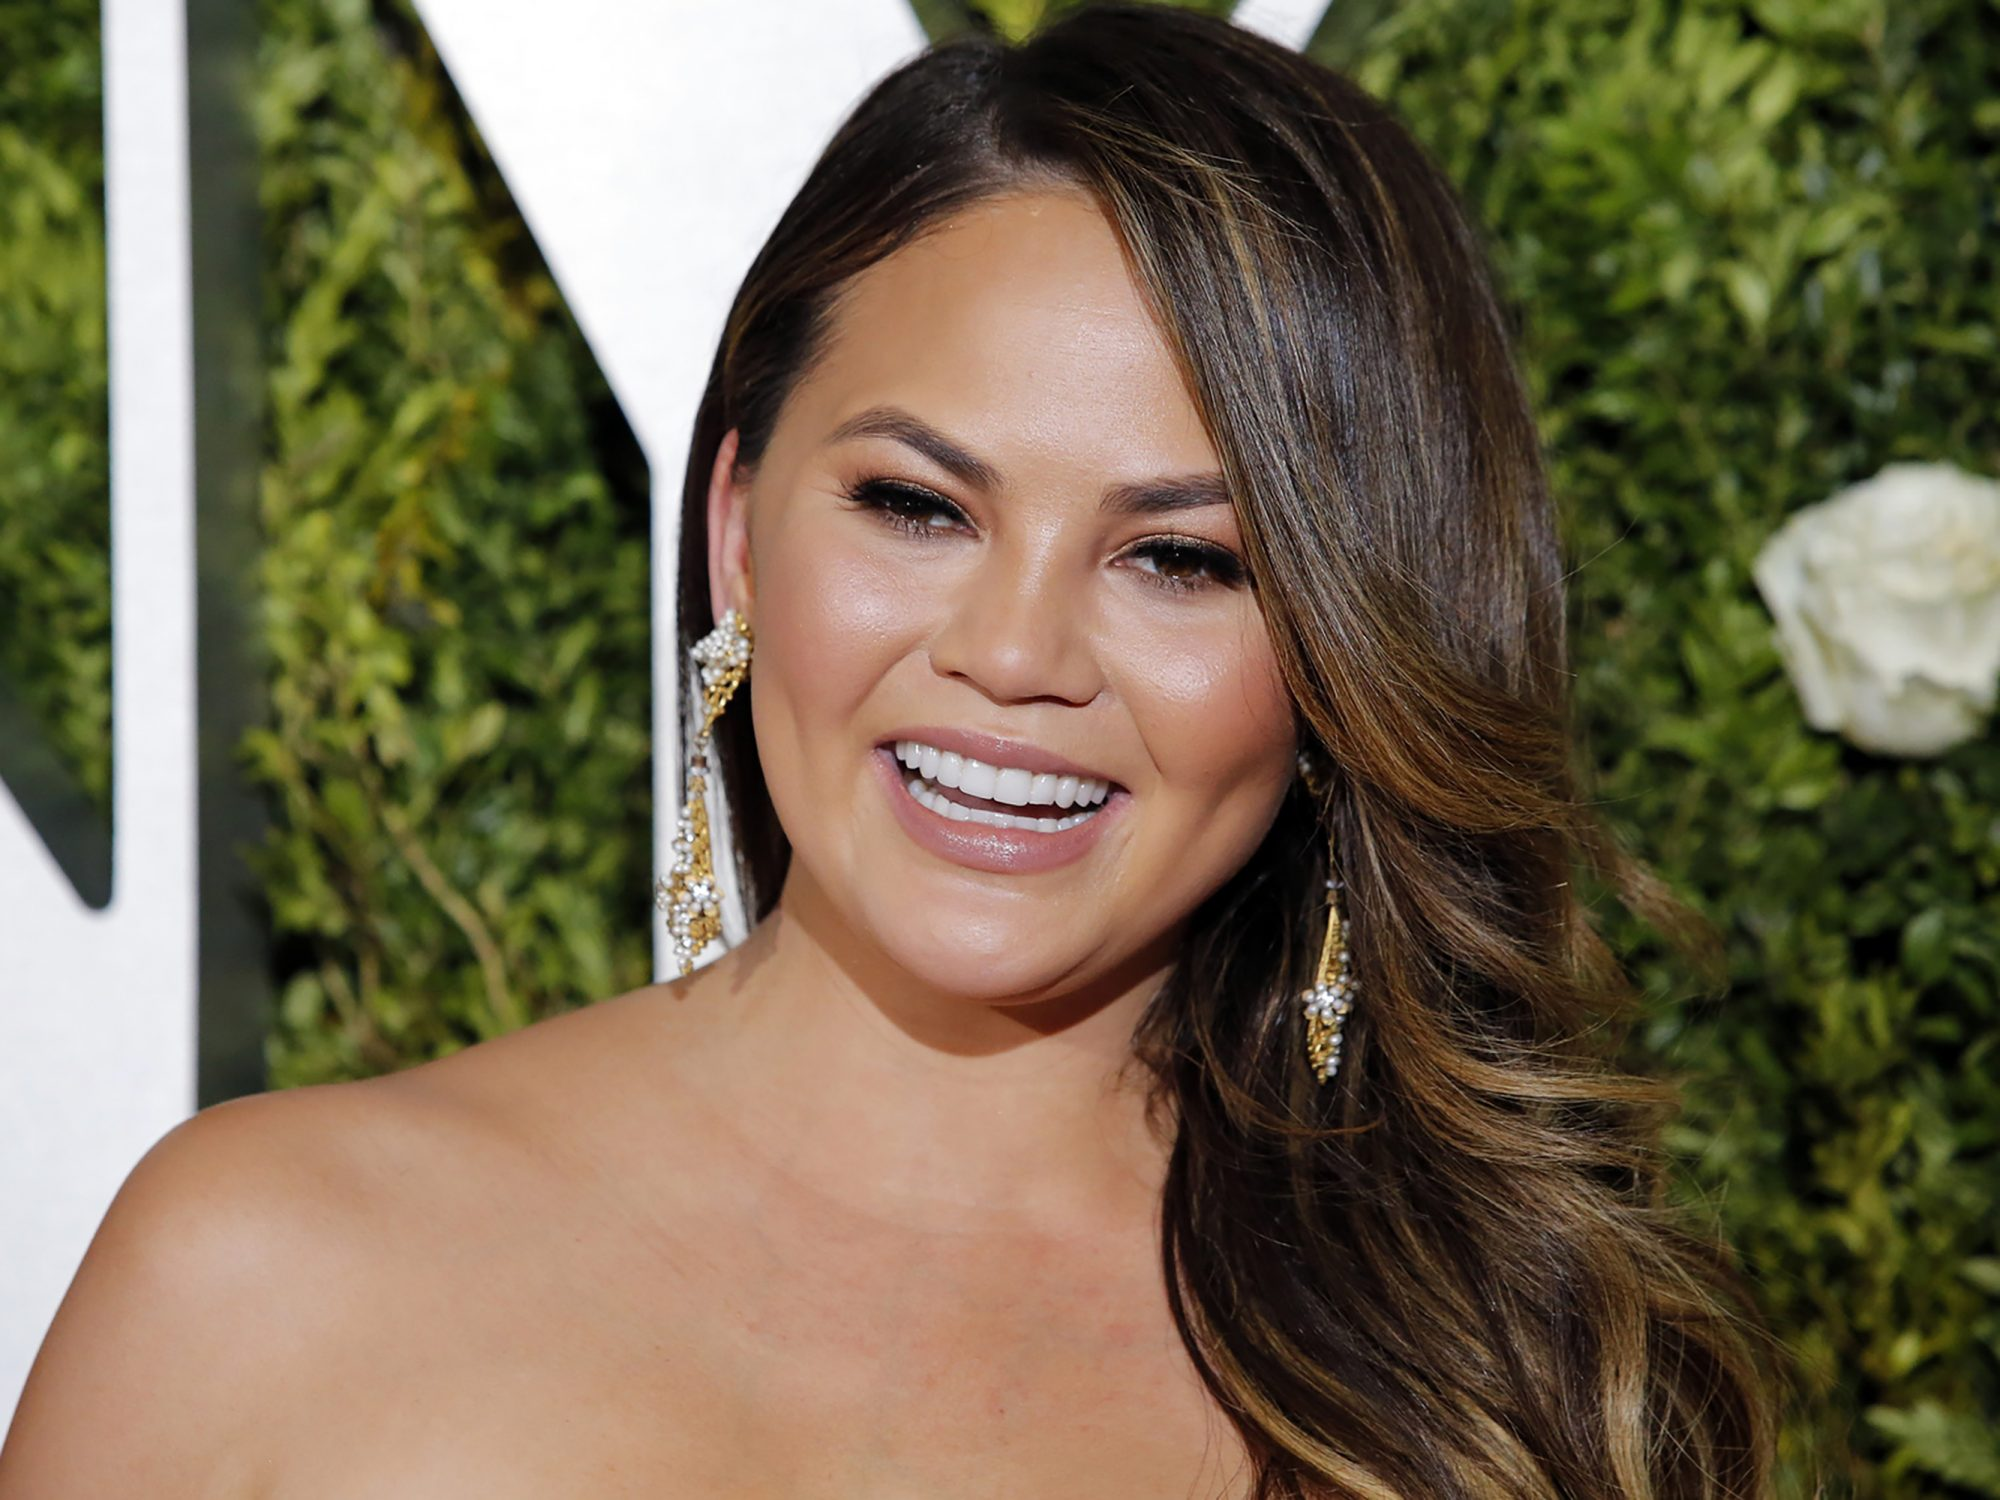 This Home Cook Has Been Making Chrissy Teigen's Recipes Vegan—And She Approves